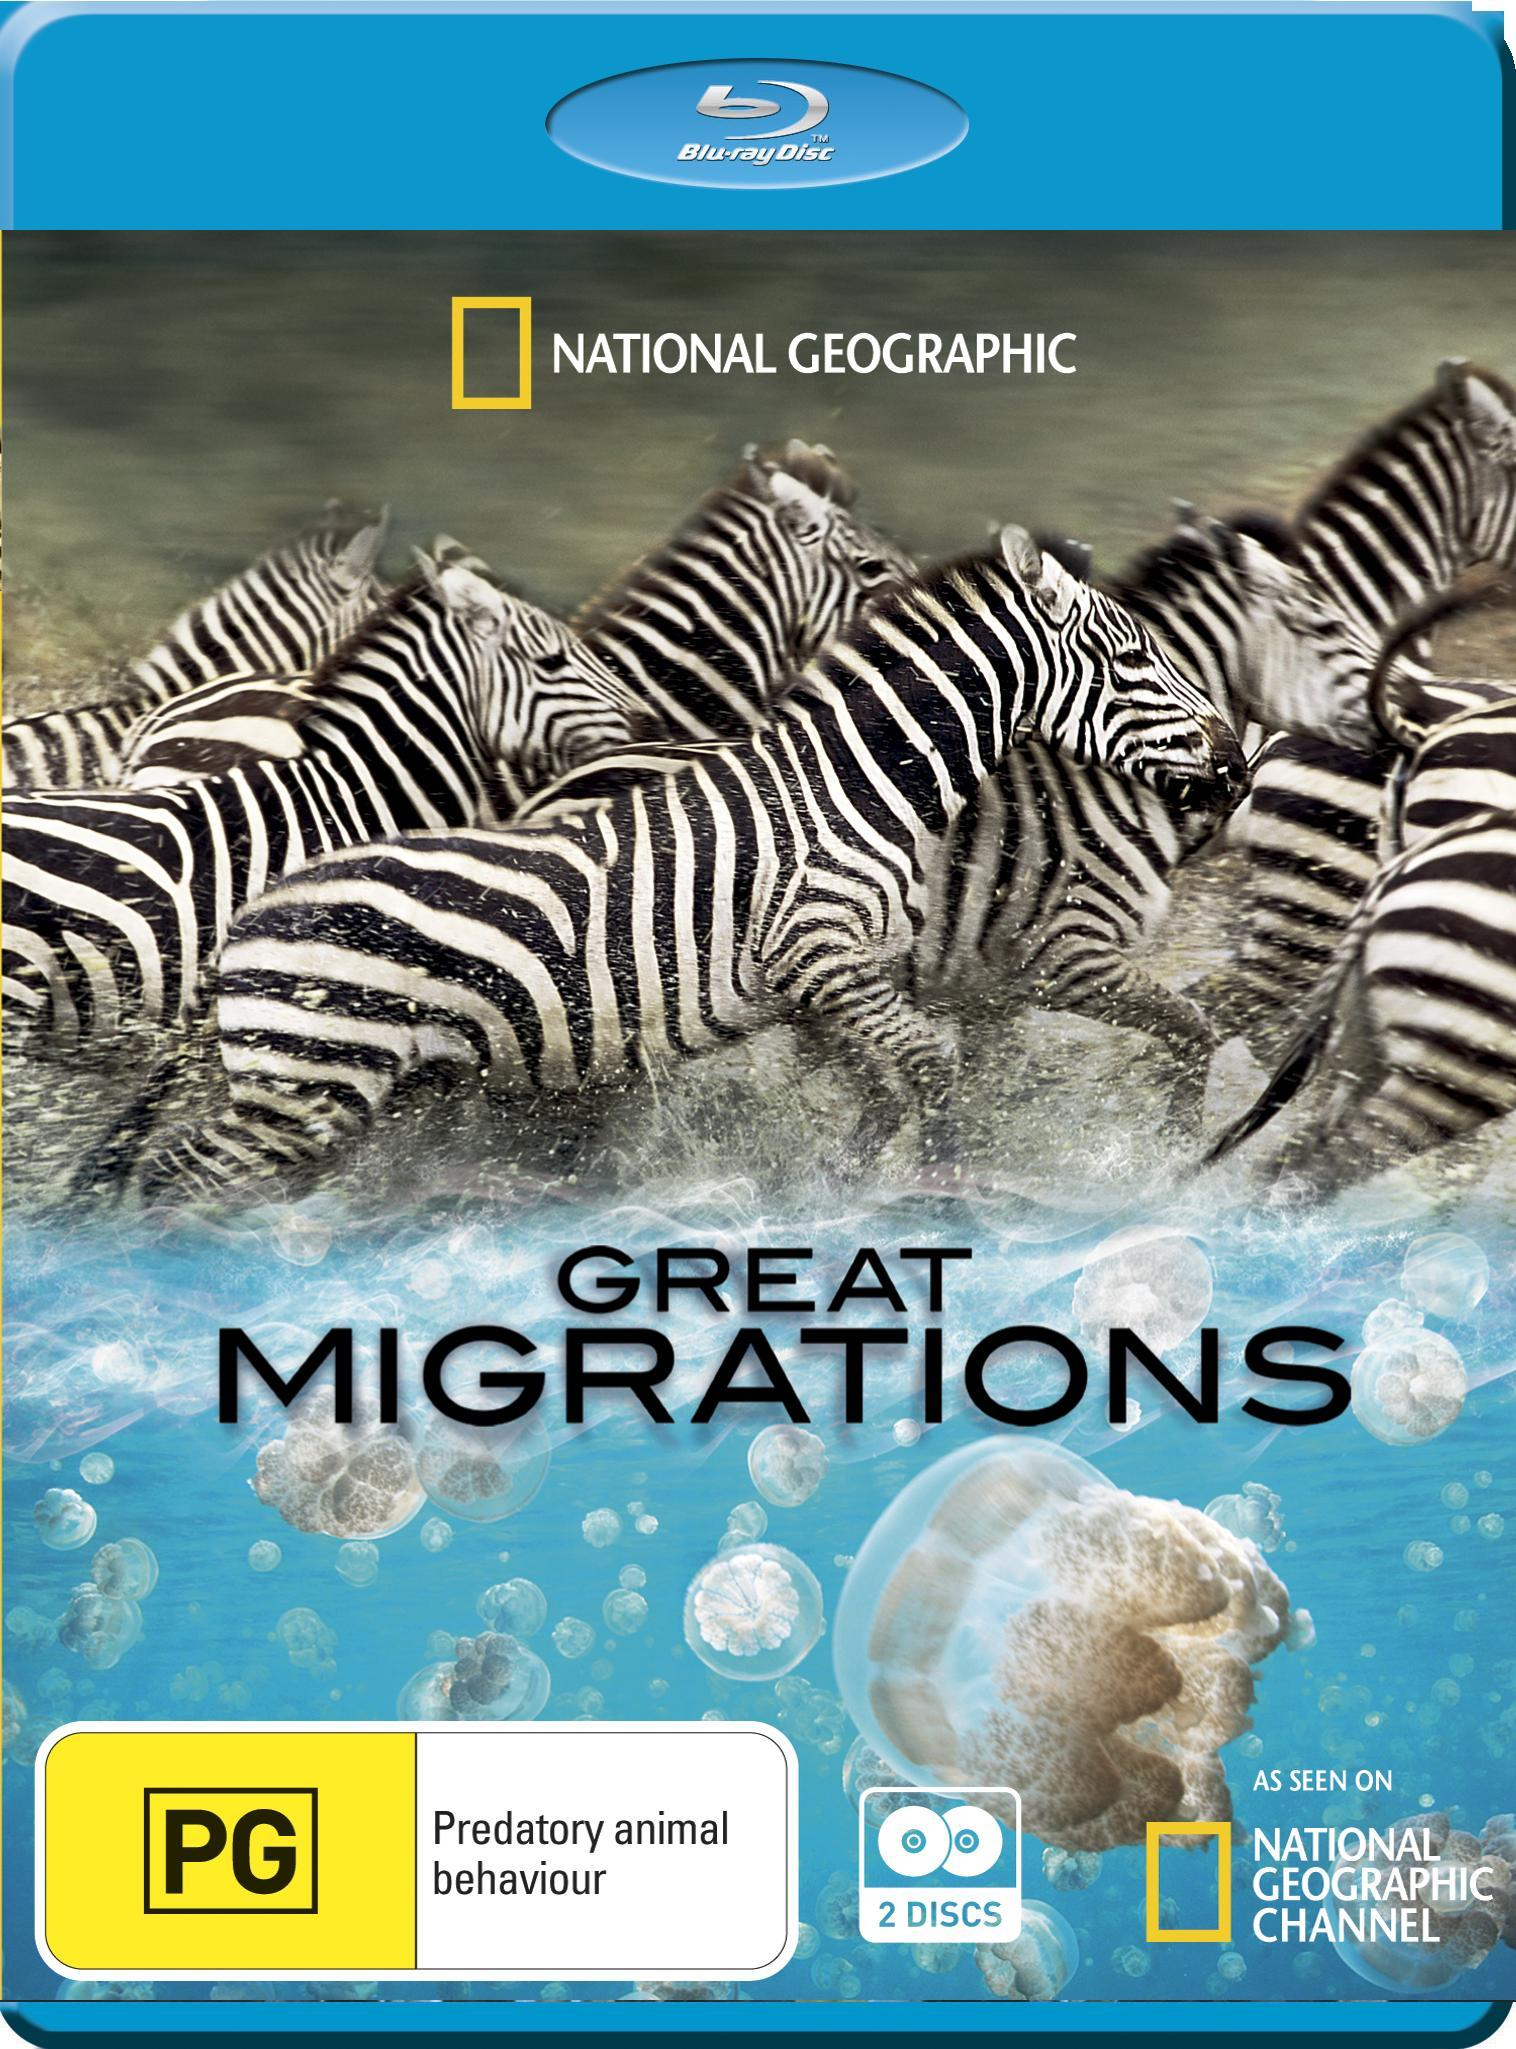 National Geographic - Buyuk Gocler - Great Migrations BRRIP 480p XviD AC3 TRDUB-BDR